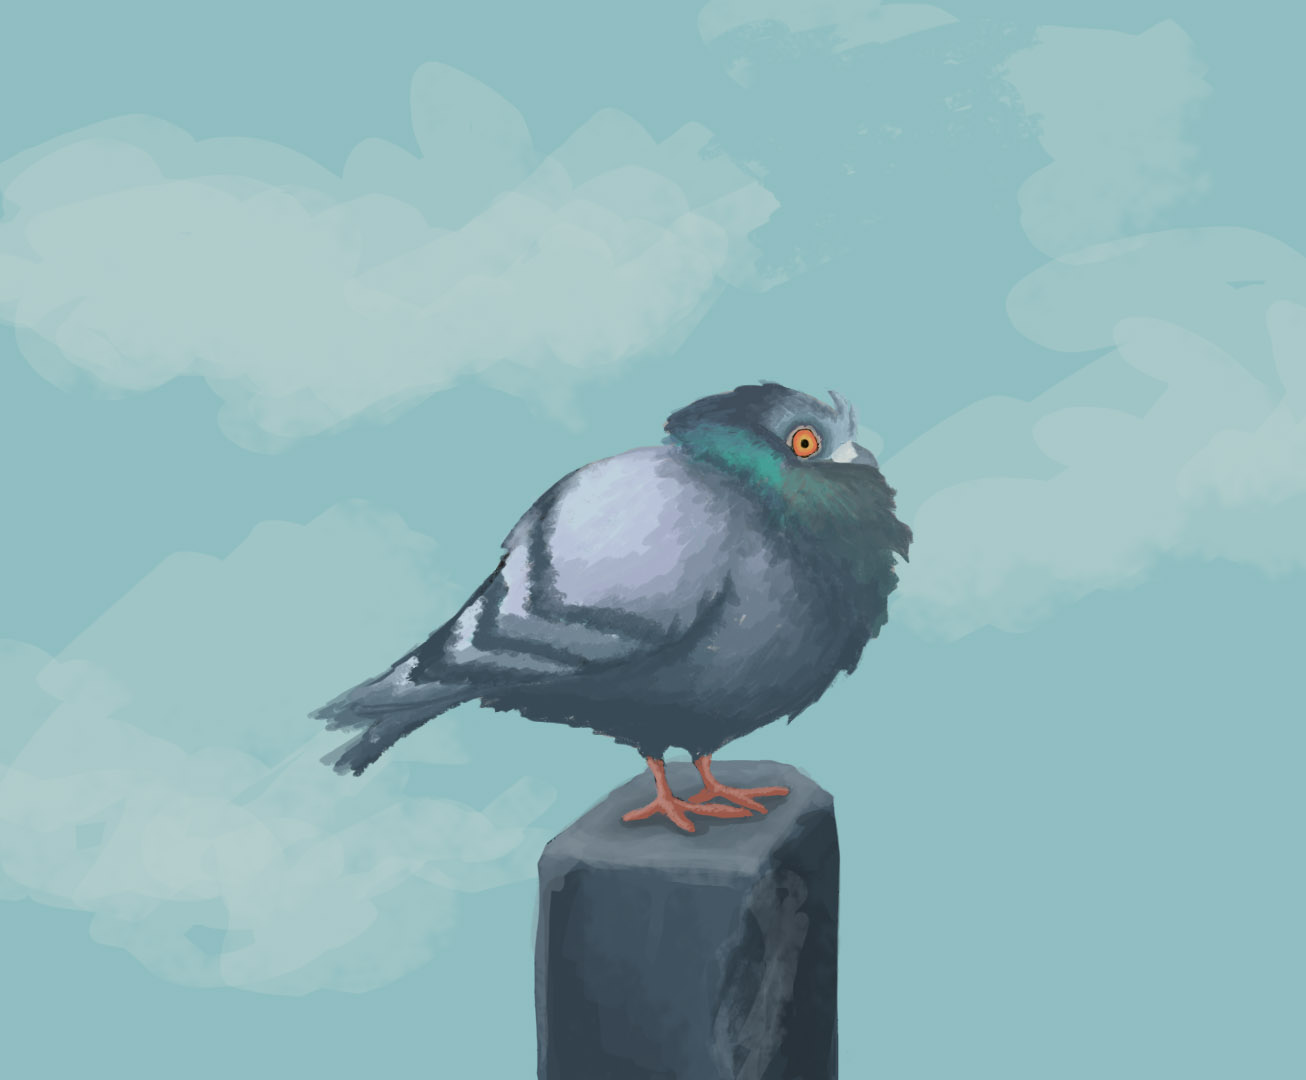 Day 11 - Pigeon on pillar.jpg